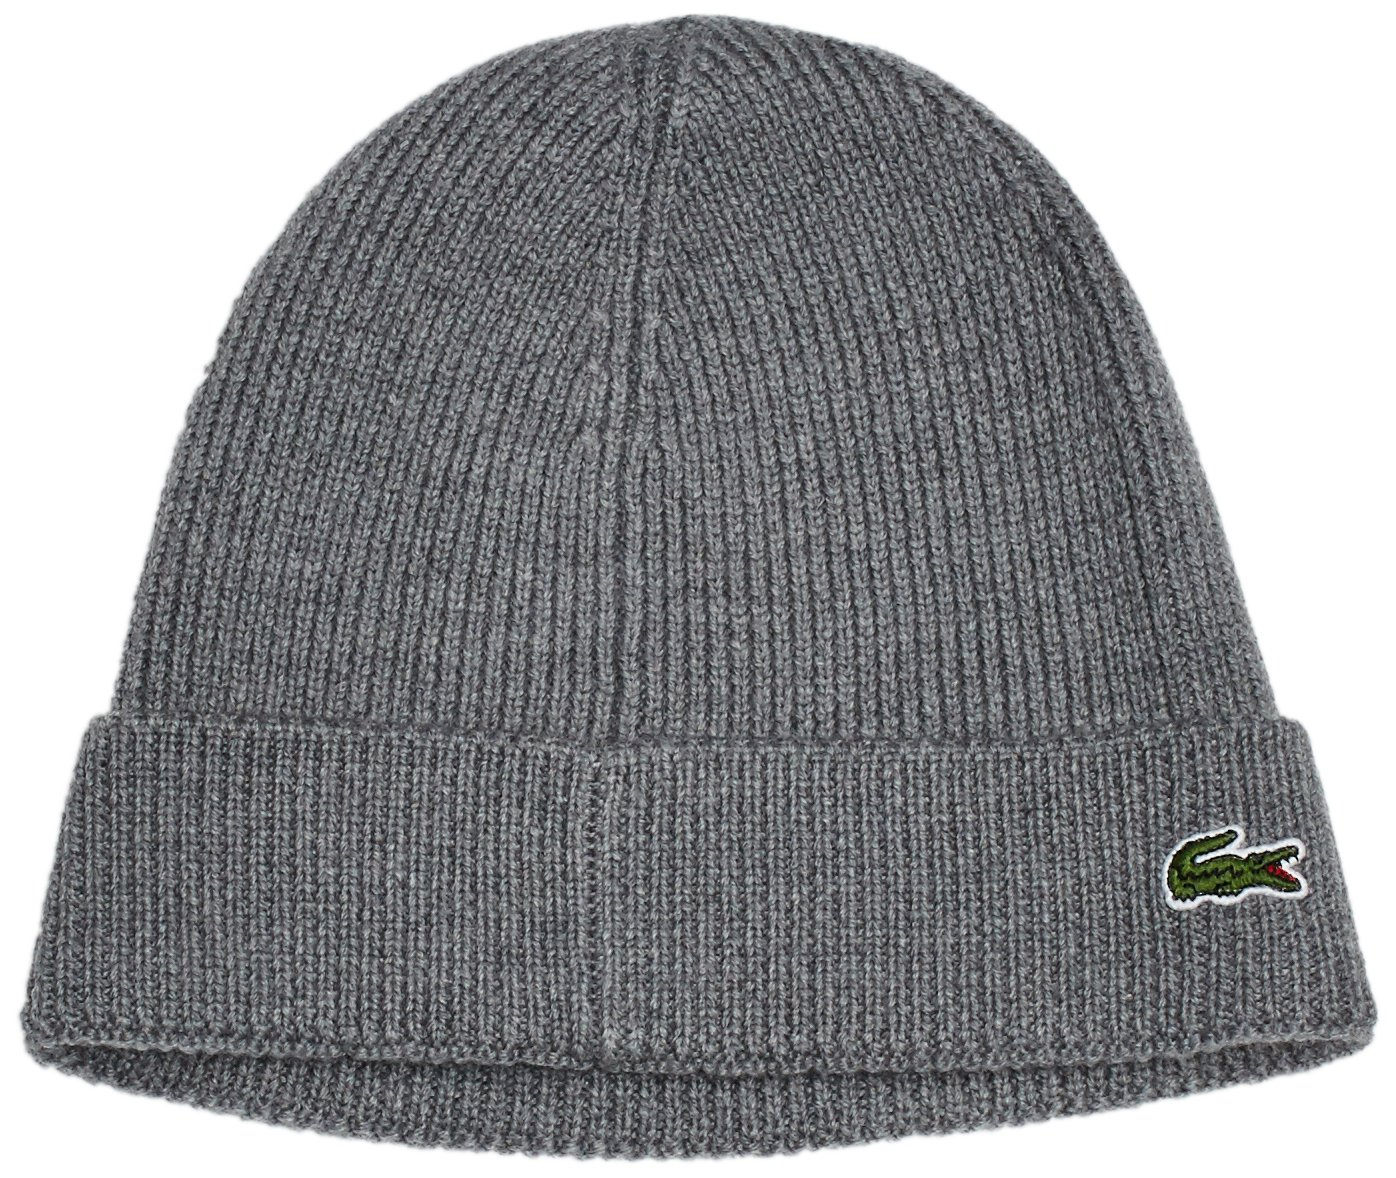 88e63abb0fd Lacoste Unisex RB3502 Ribbed Knitted Wool Beanie Hat - Stone Chine   Amazon.com.au  Fashion